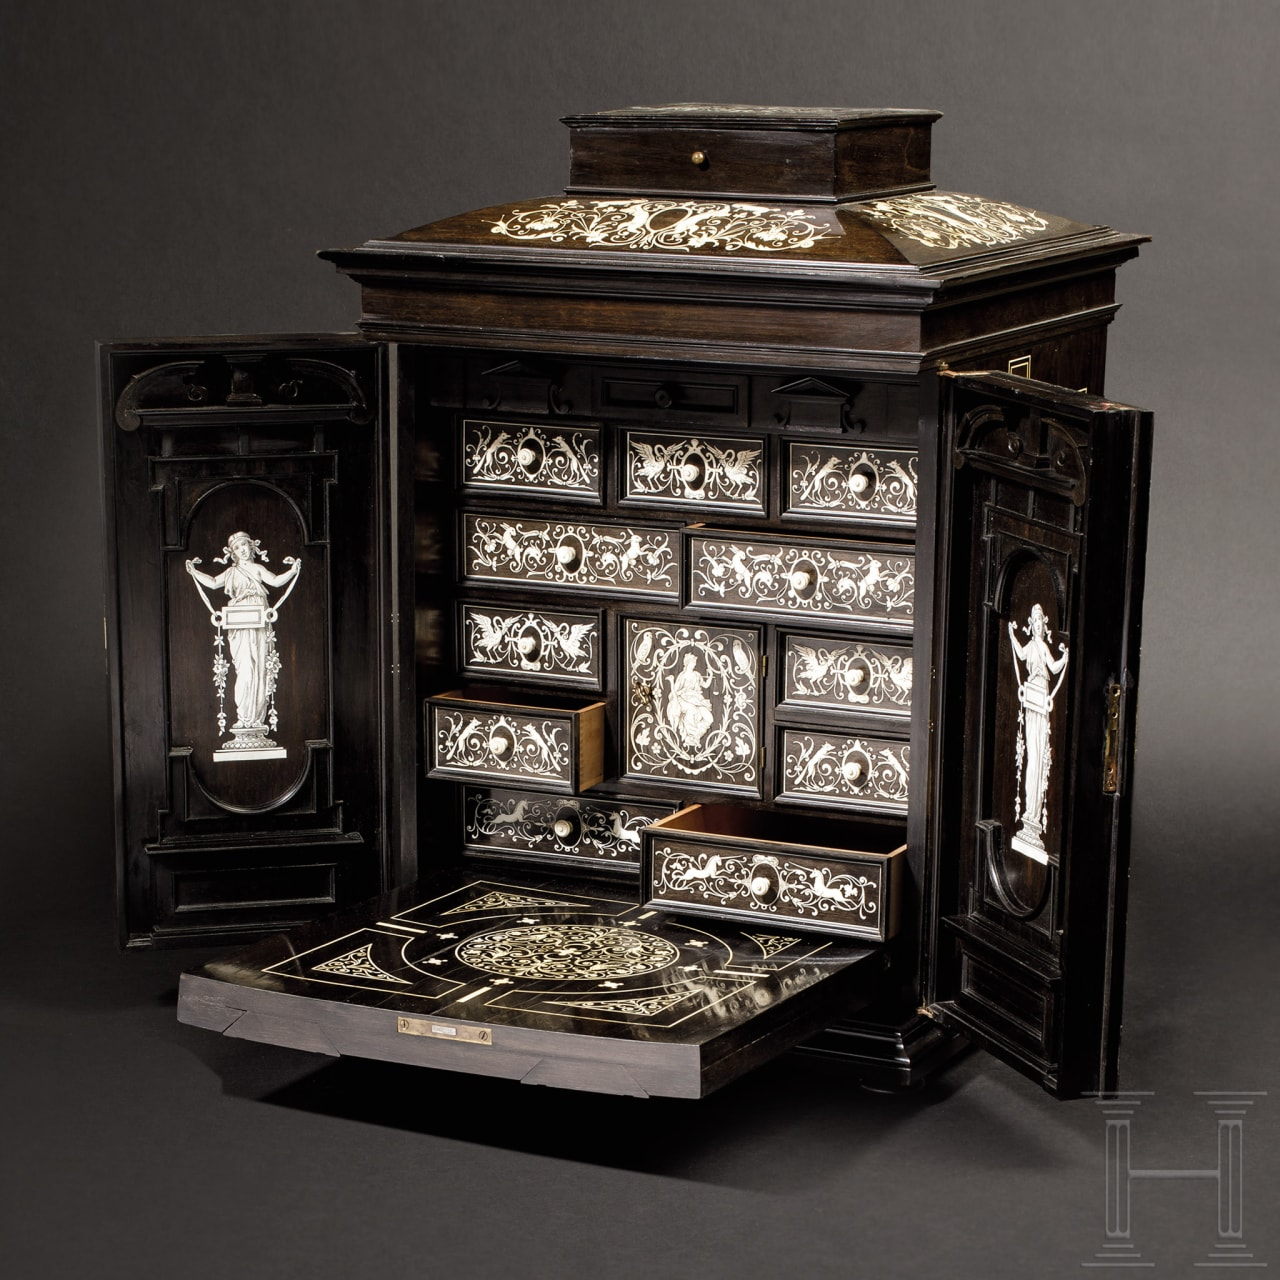 An exquisitely wrought cabinet in Renaissance style, signed Augostino Colli, Cortina d'Ampezzo, dated 1894